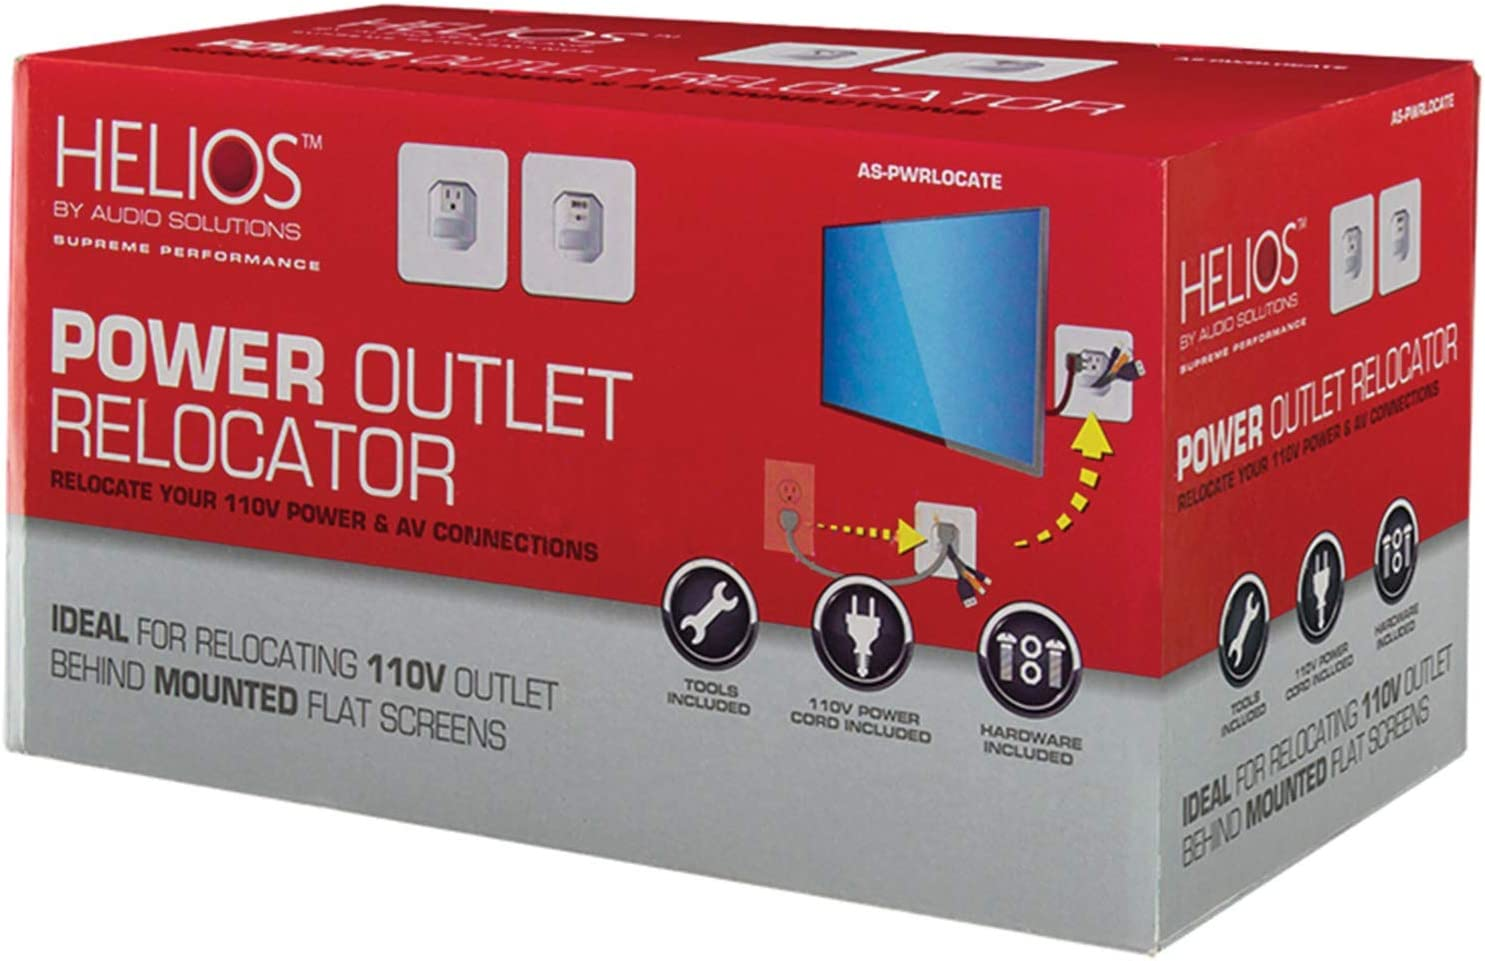 AS-PWRLOCATE Metra Home Theater Relocation Power Kit Multicolor